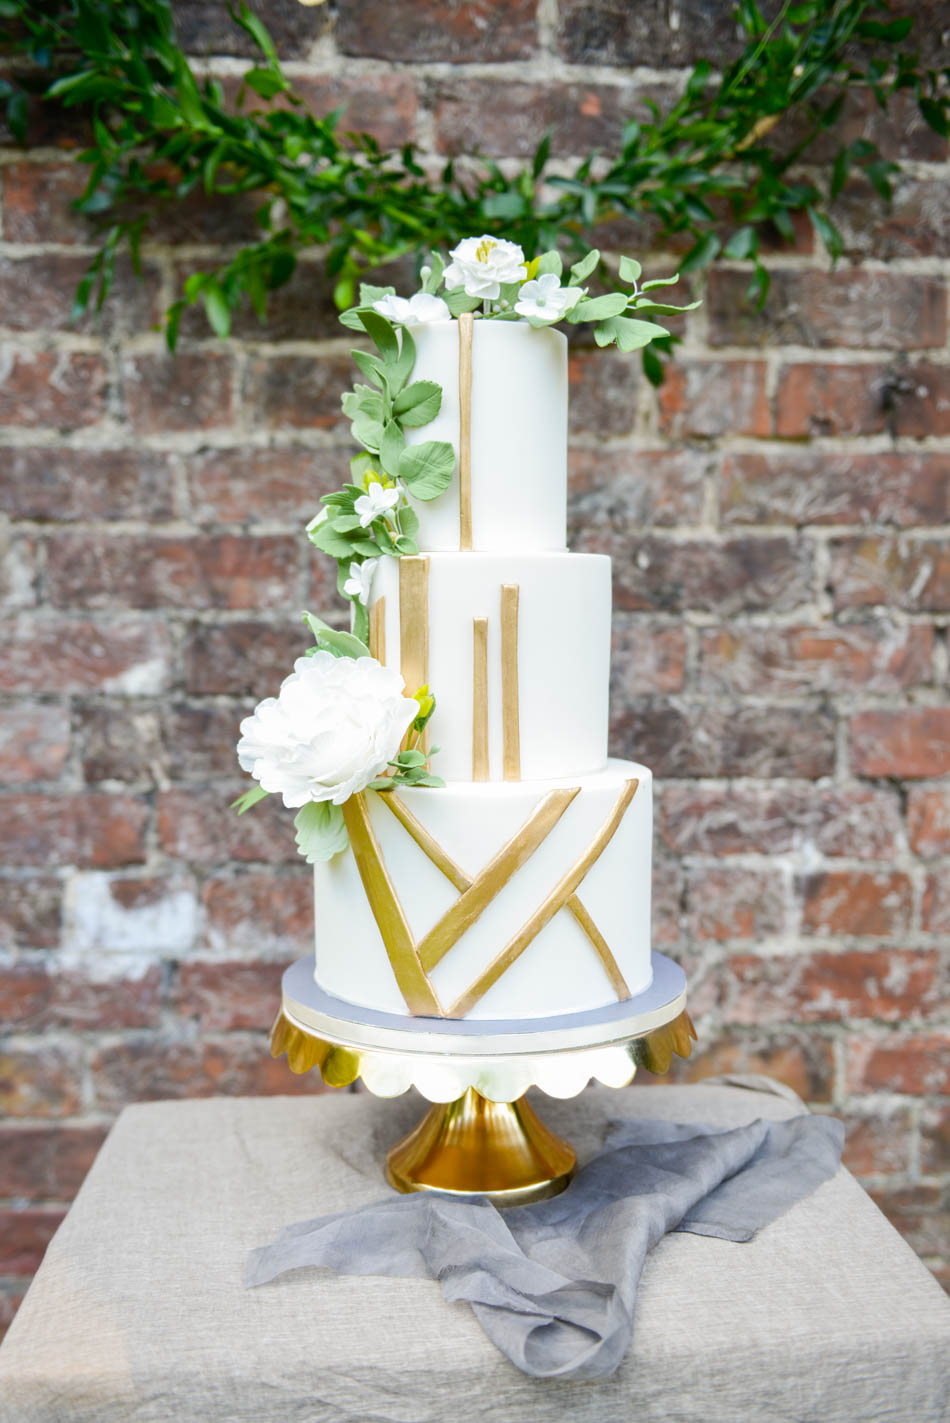 White wedding cake with gold accents